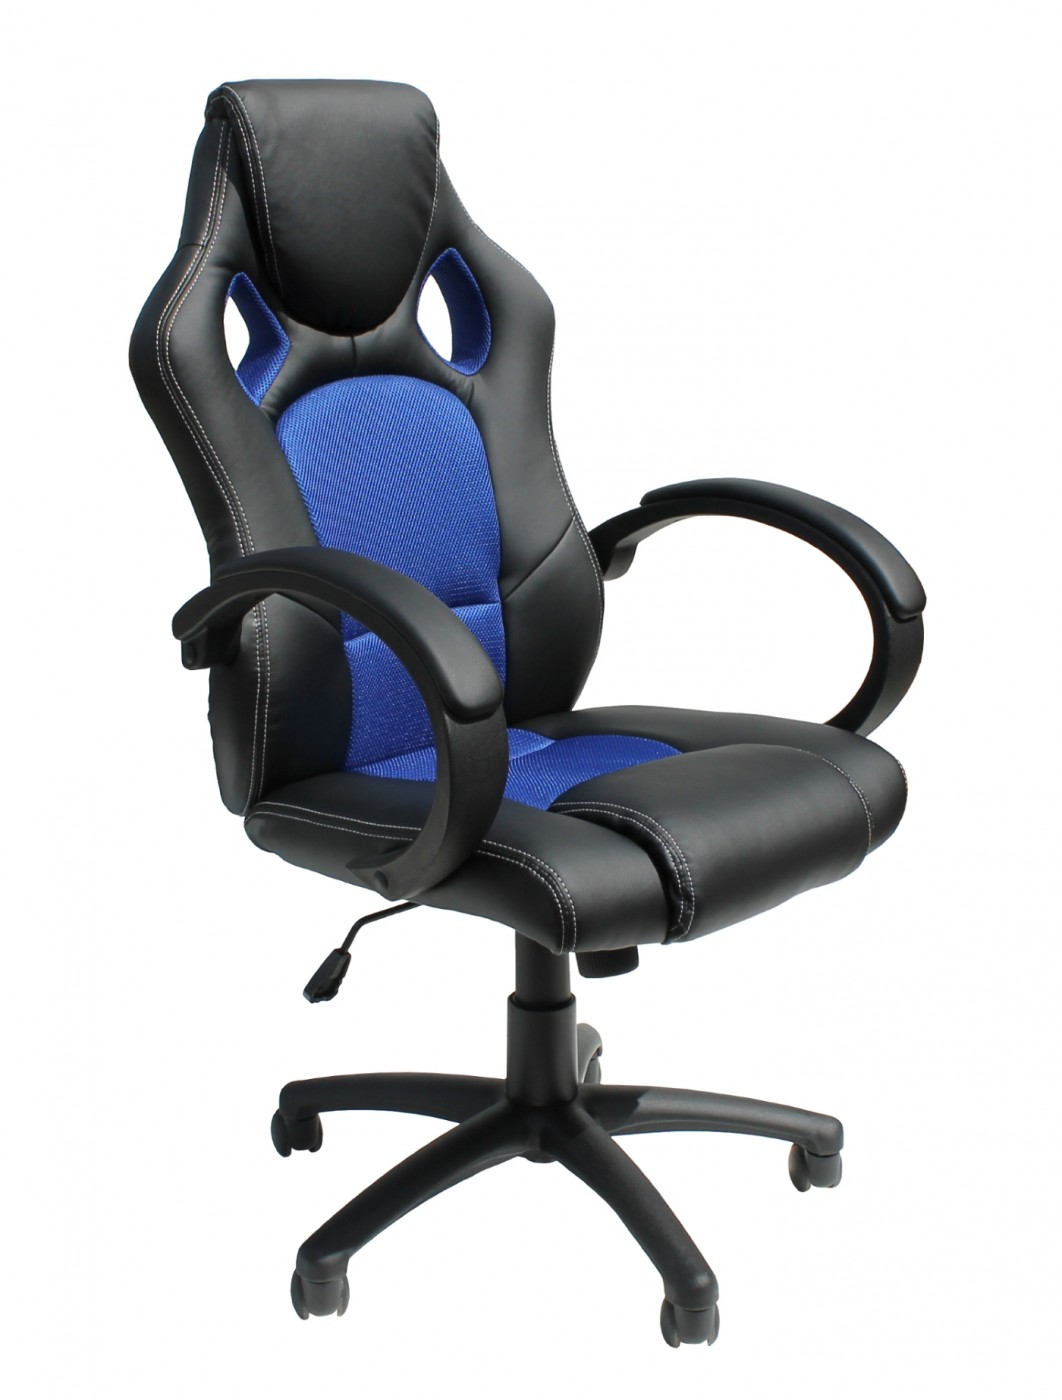 Gaming Chairs   Alphason Daytona Office Chair AOC5006BLU   Enlarged View